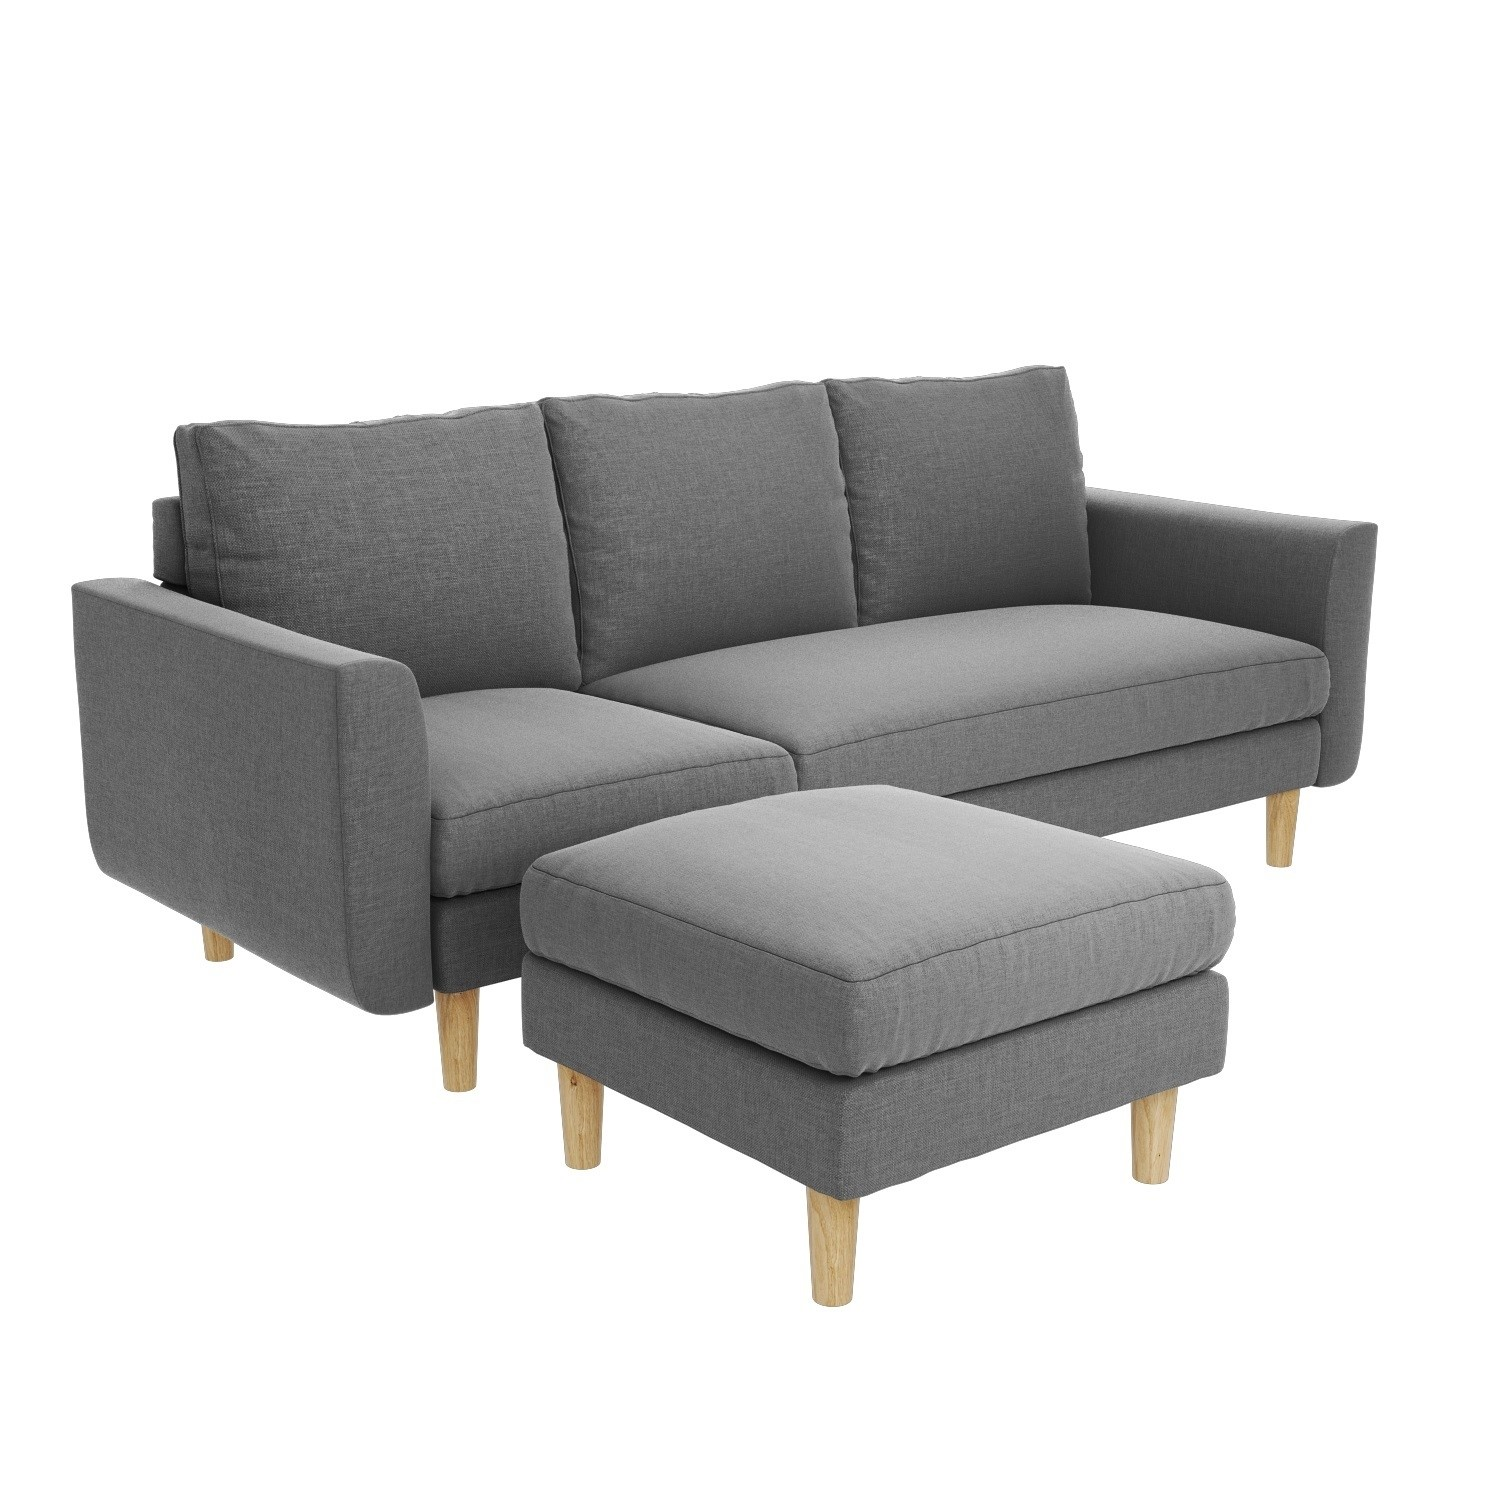 Details about Fabric Corner Chaise Sofa Small 3 Seater Modern Light Grey